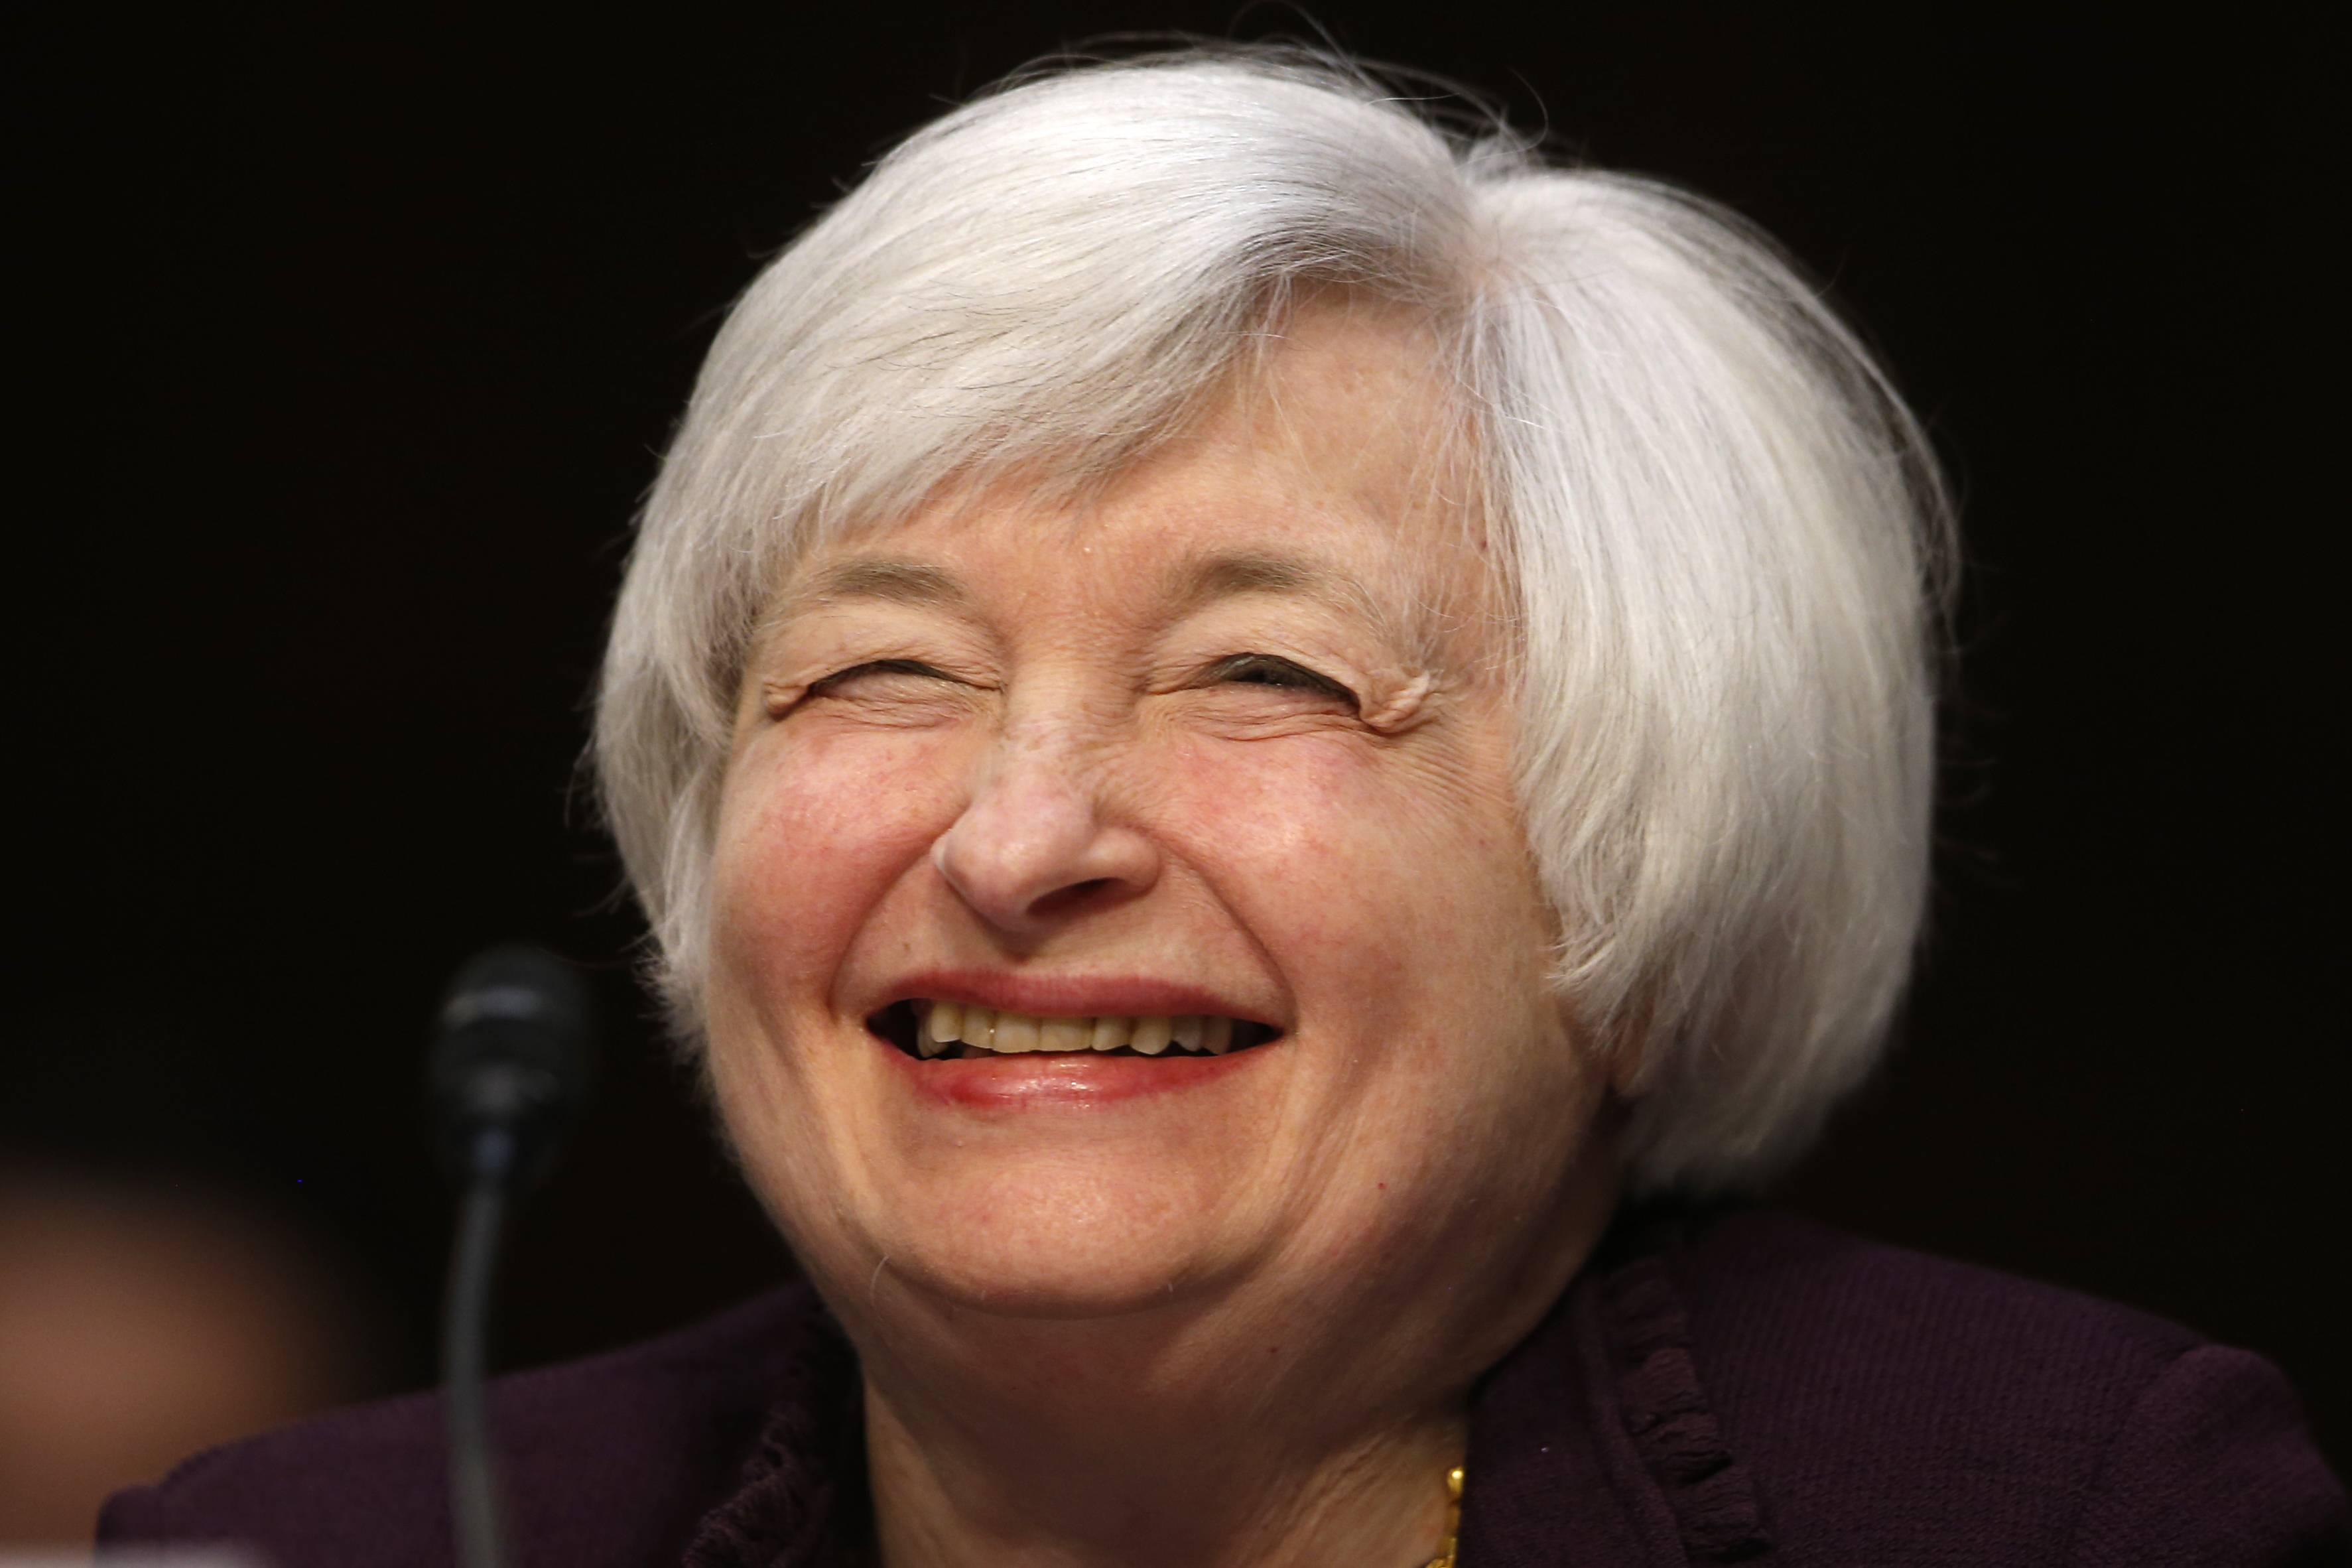 Federal Reserve Chair Janet Yellen is spotlighting the fact that U.S. small businesses have accounted for more than half the job gains during the nearly 5-year-old economic recovery.